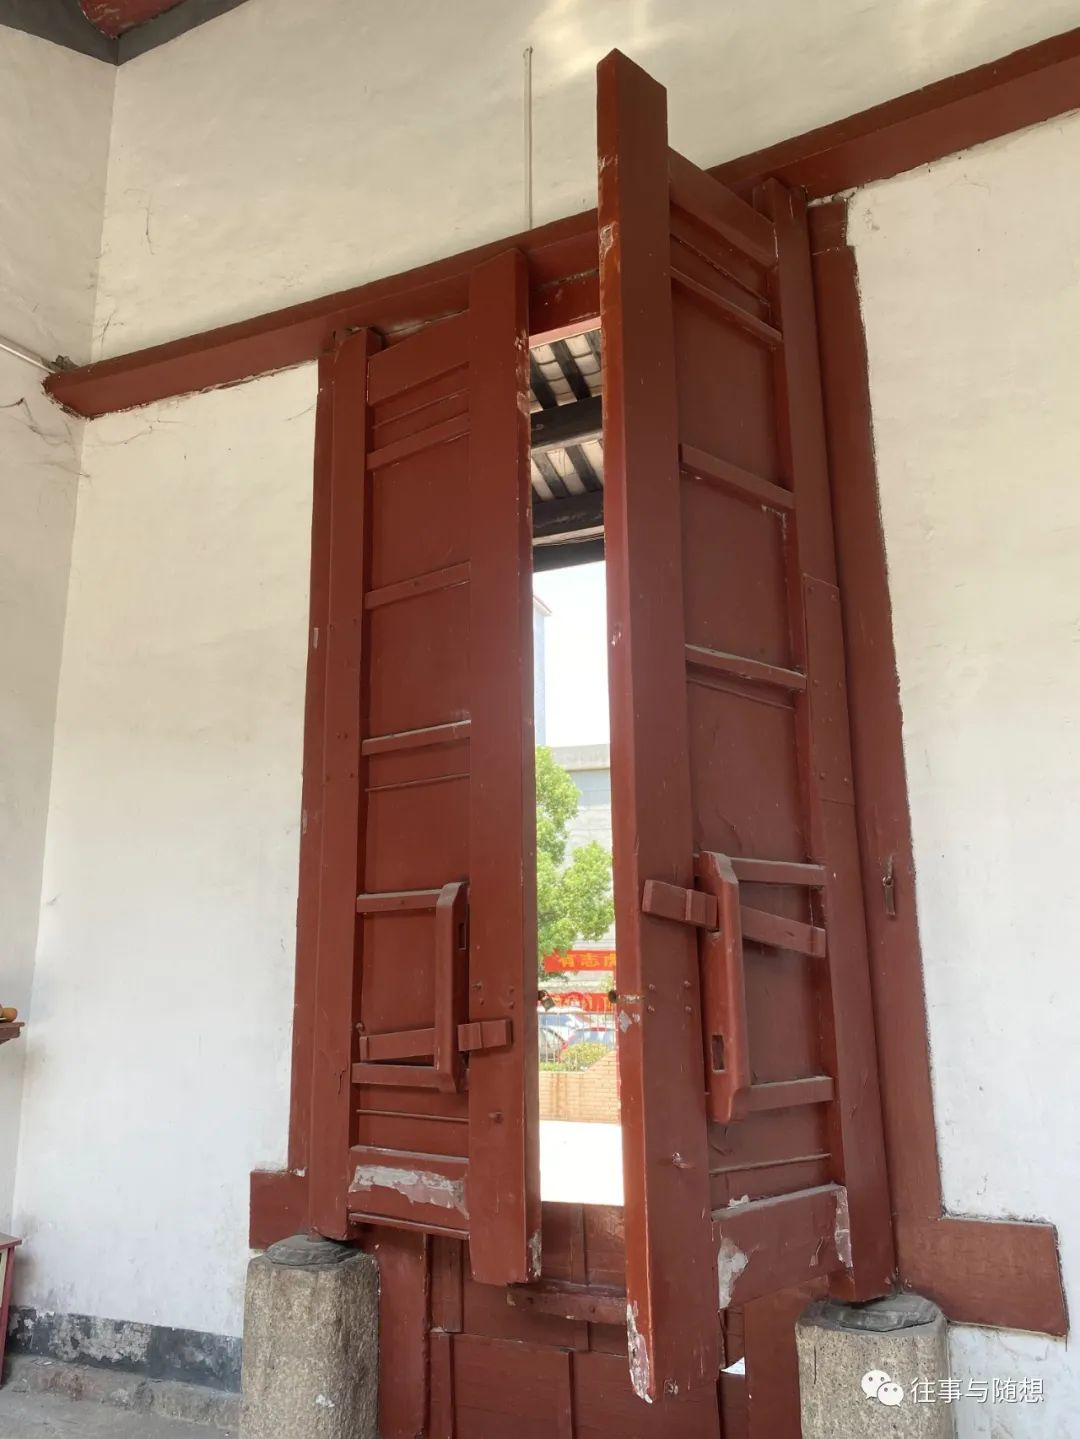 A very tall, red Chinese style wooden door, set into a white wall